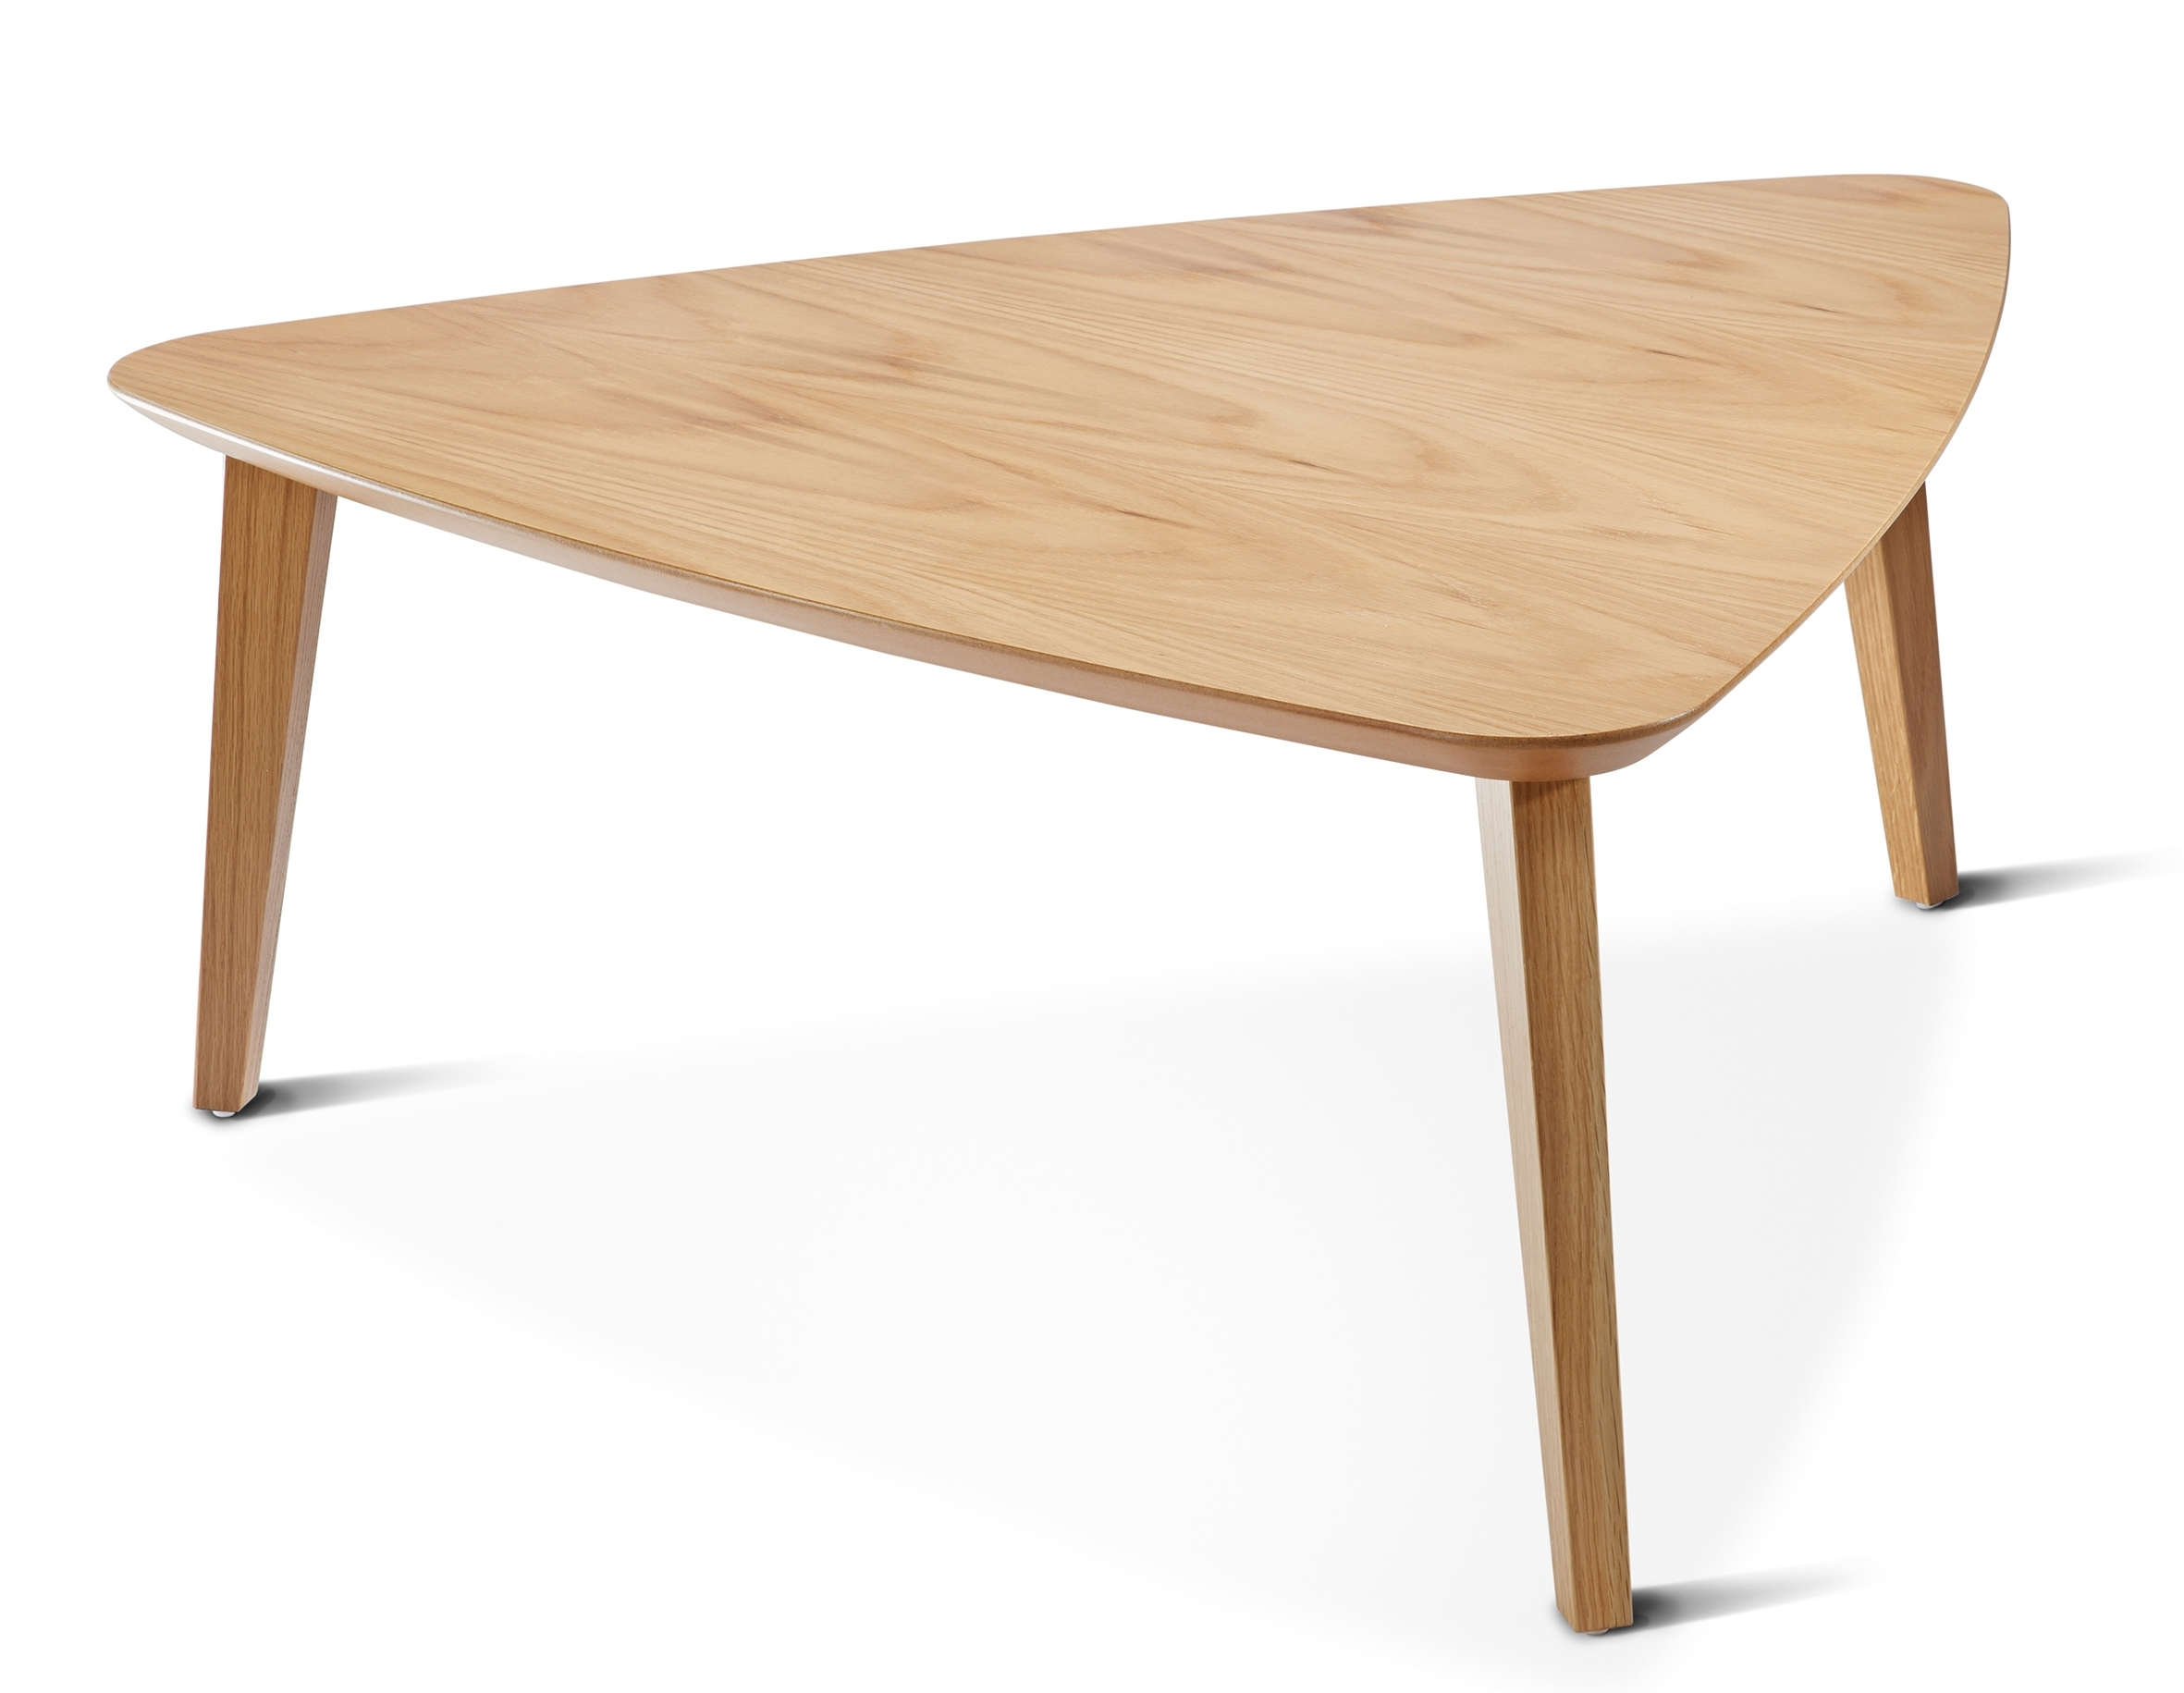 Mortimer Triangular Coffee Table – Tmoc/tri | Connection In Contemporary Curves Coffee Tables (View 20 of 30)